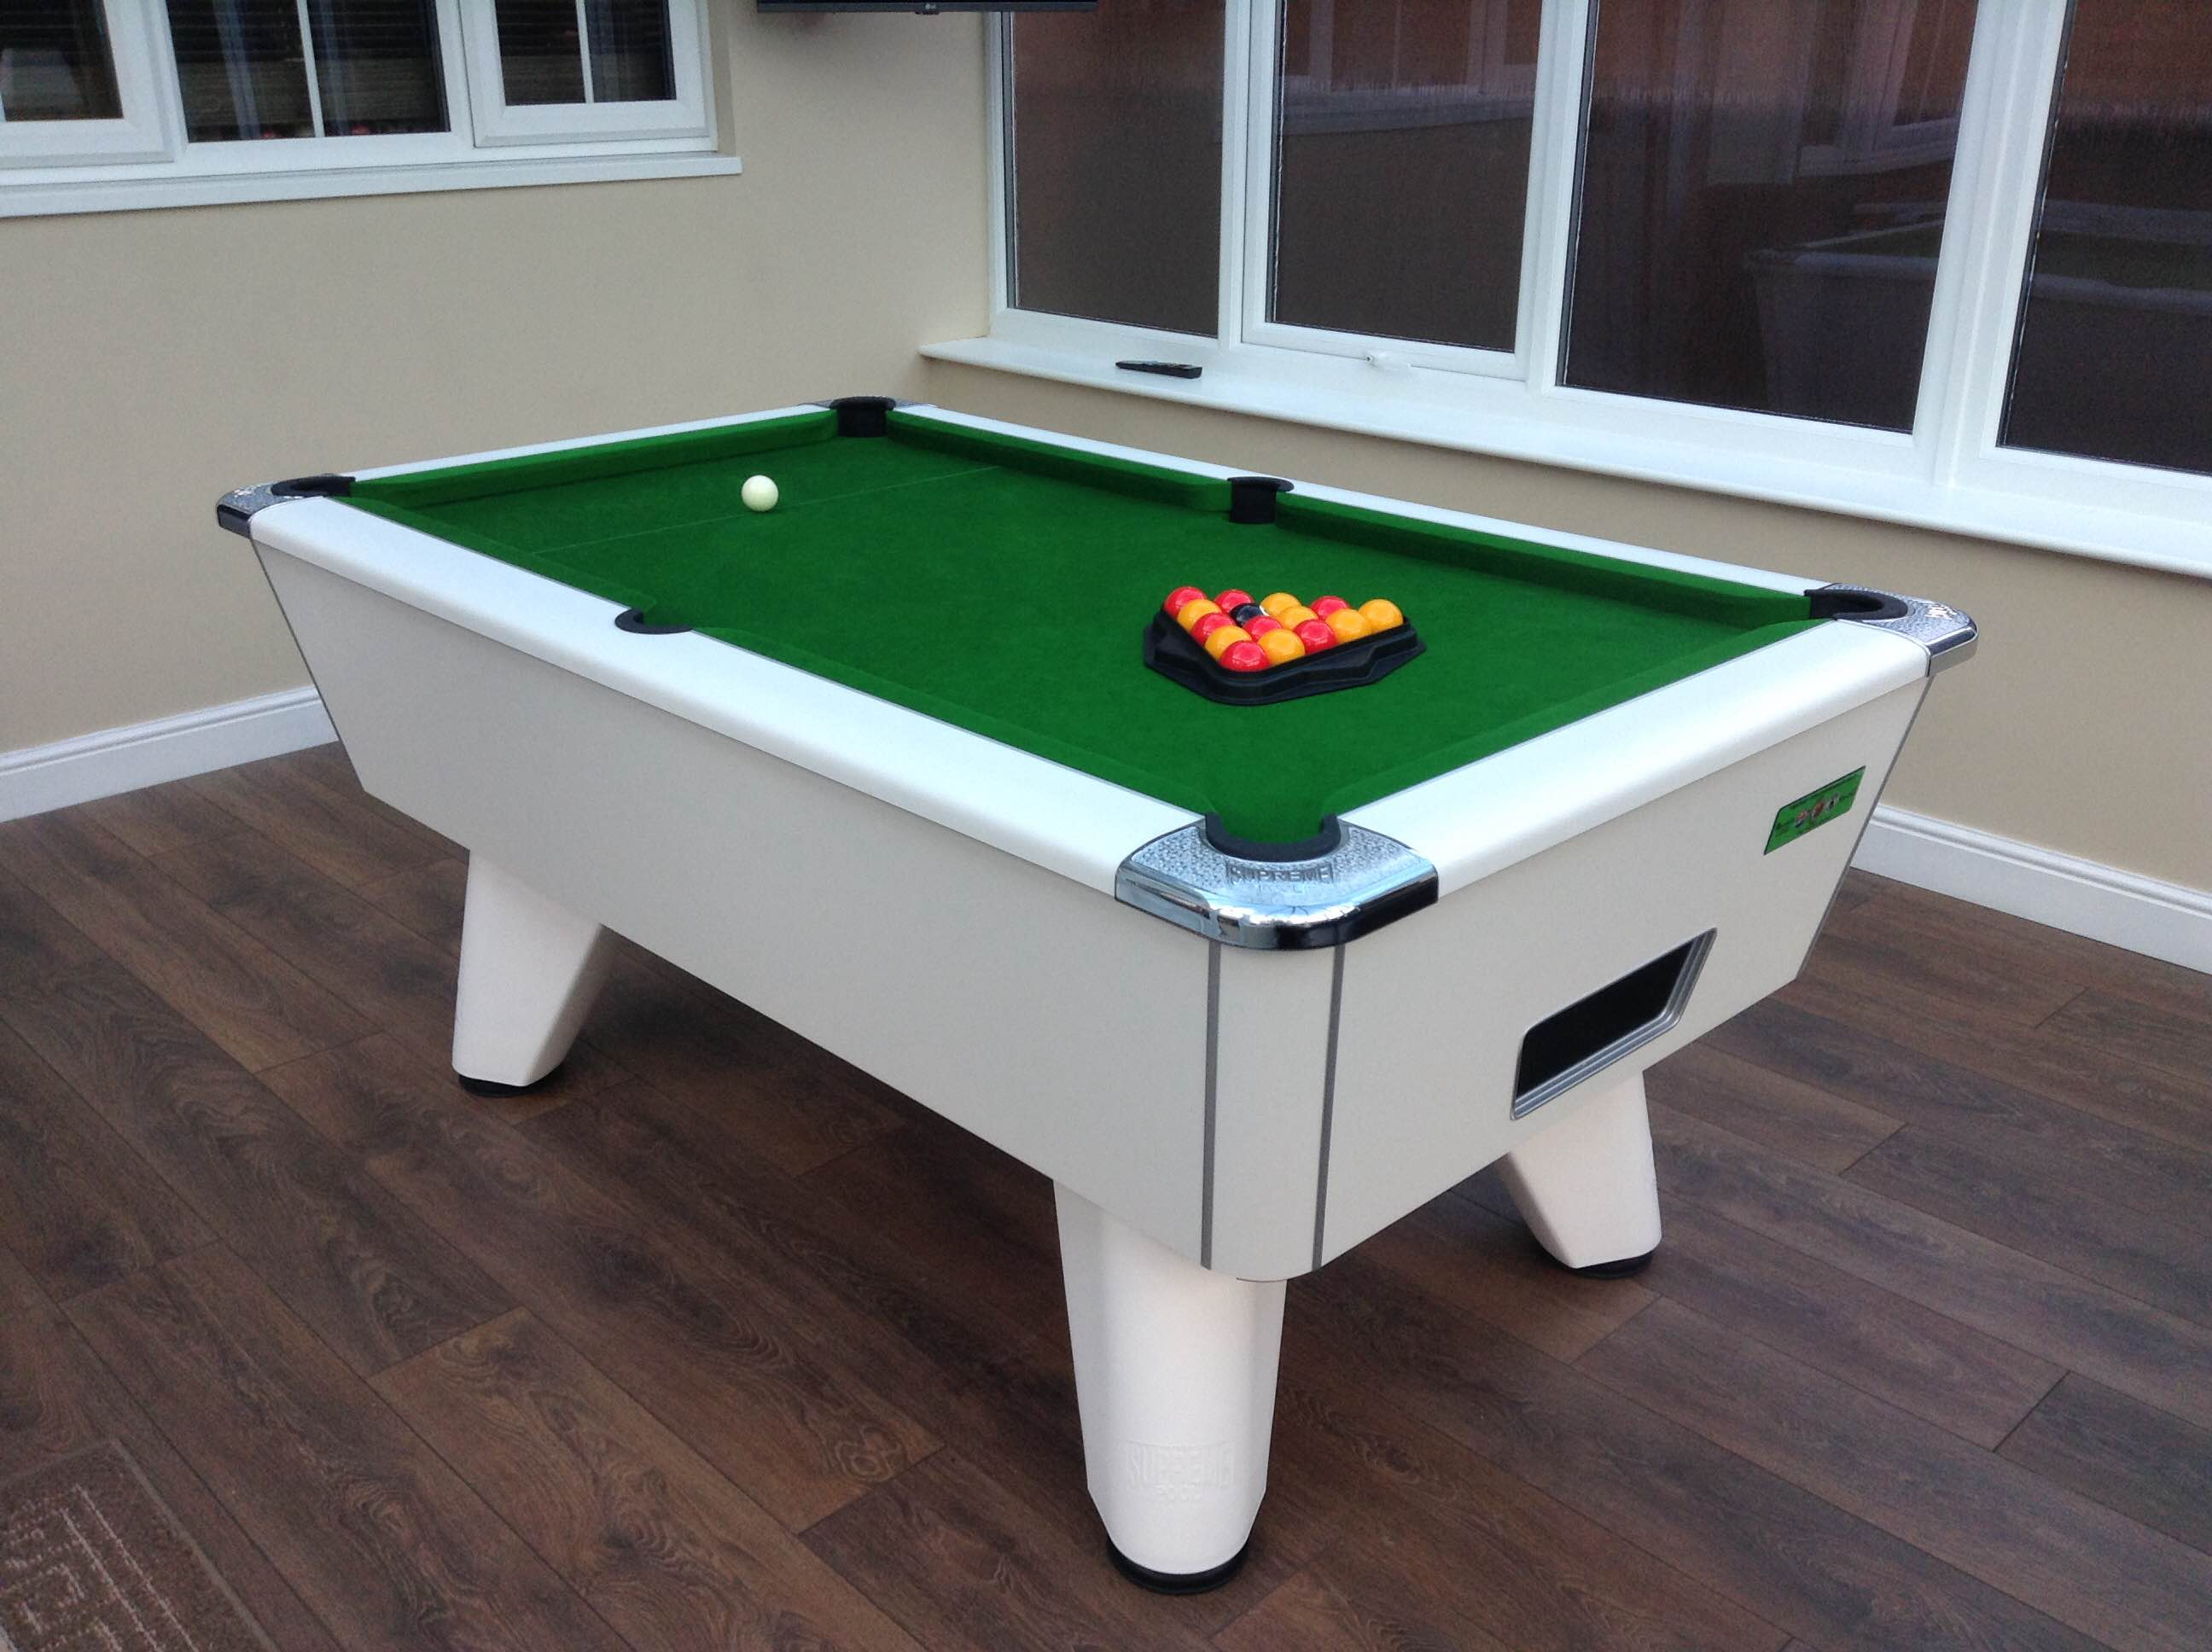 White Winner Pool Table with Green Cloth